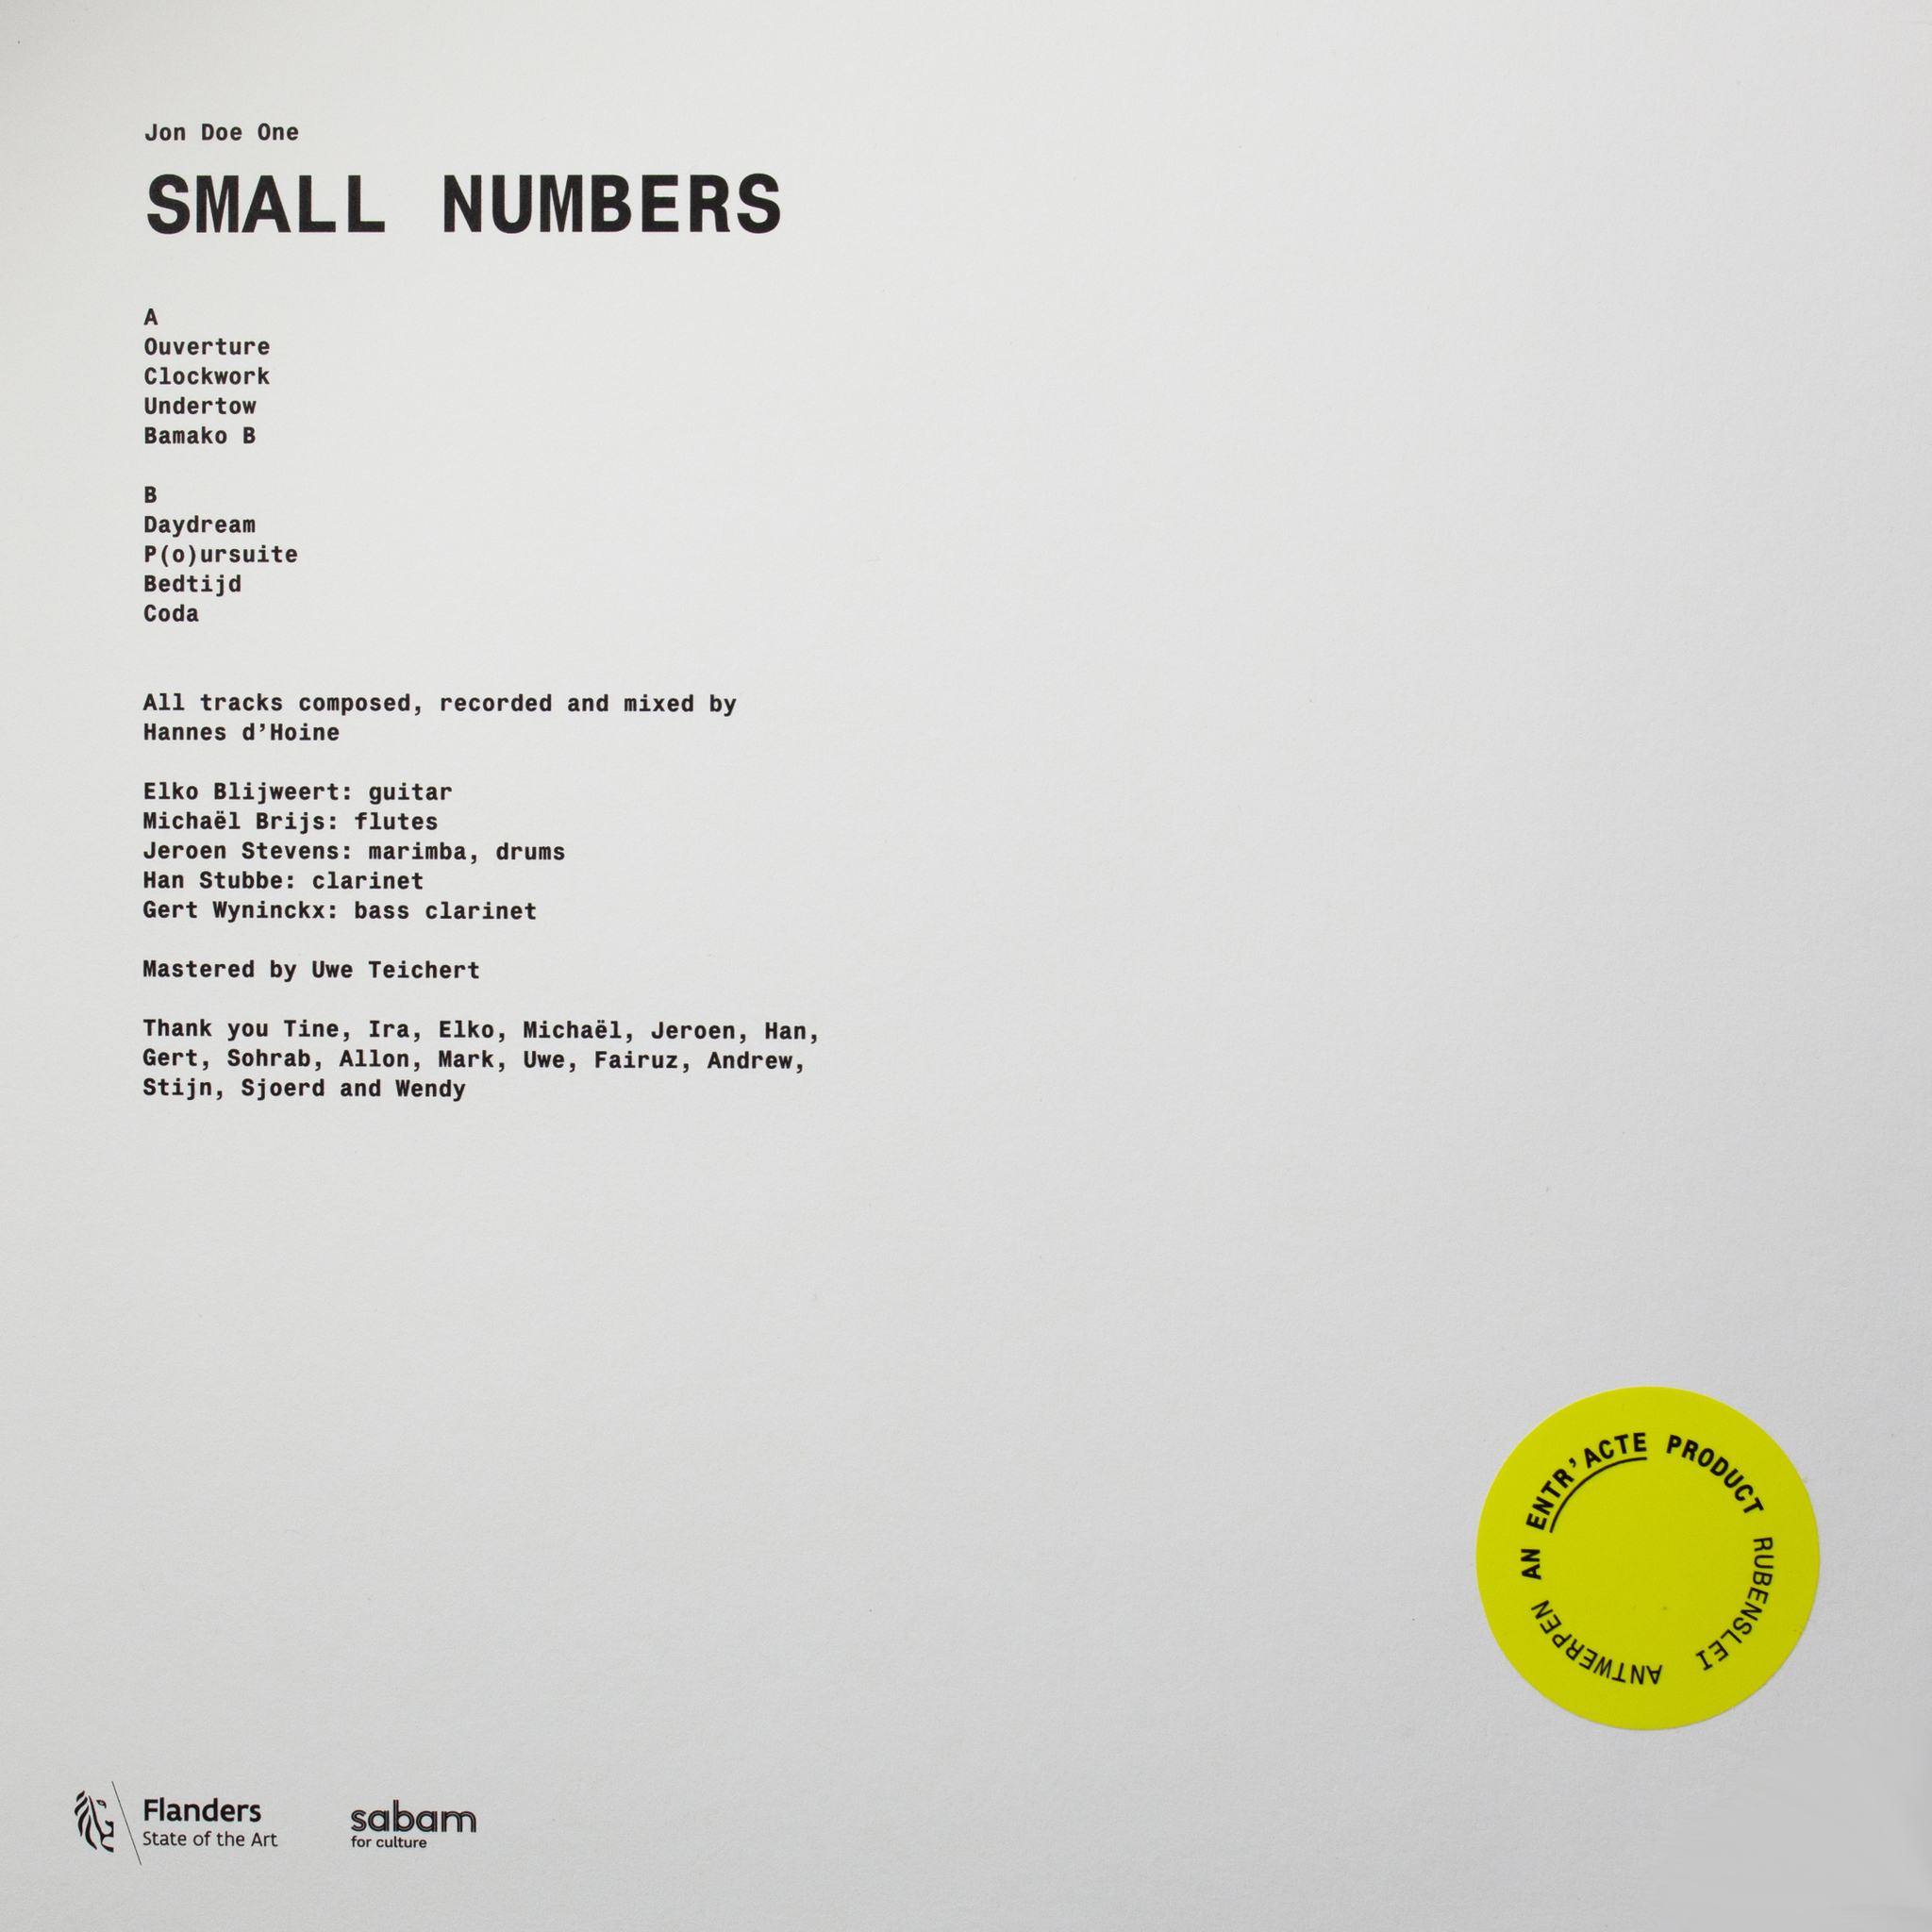 Small Numbers